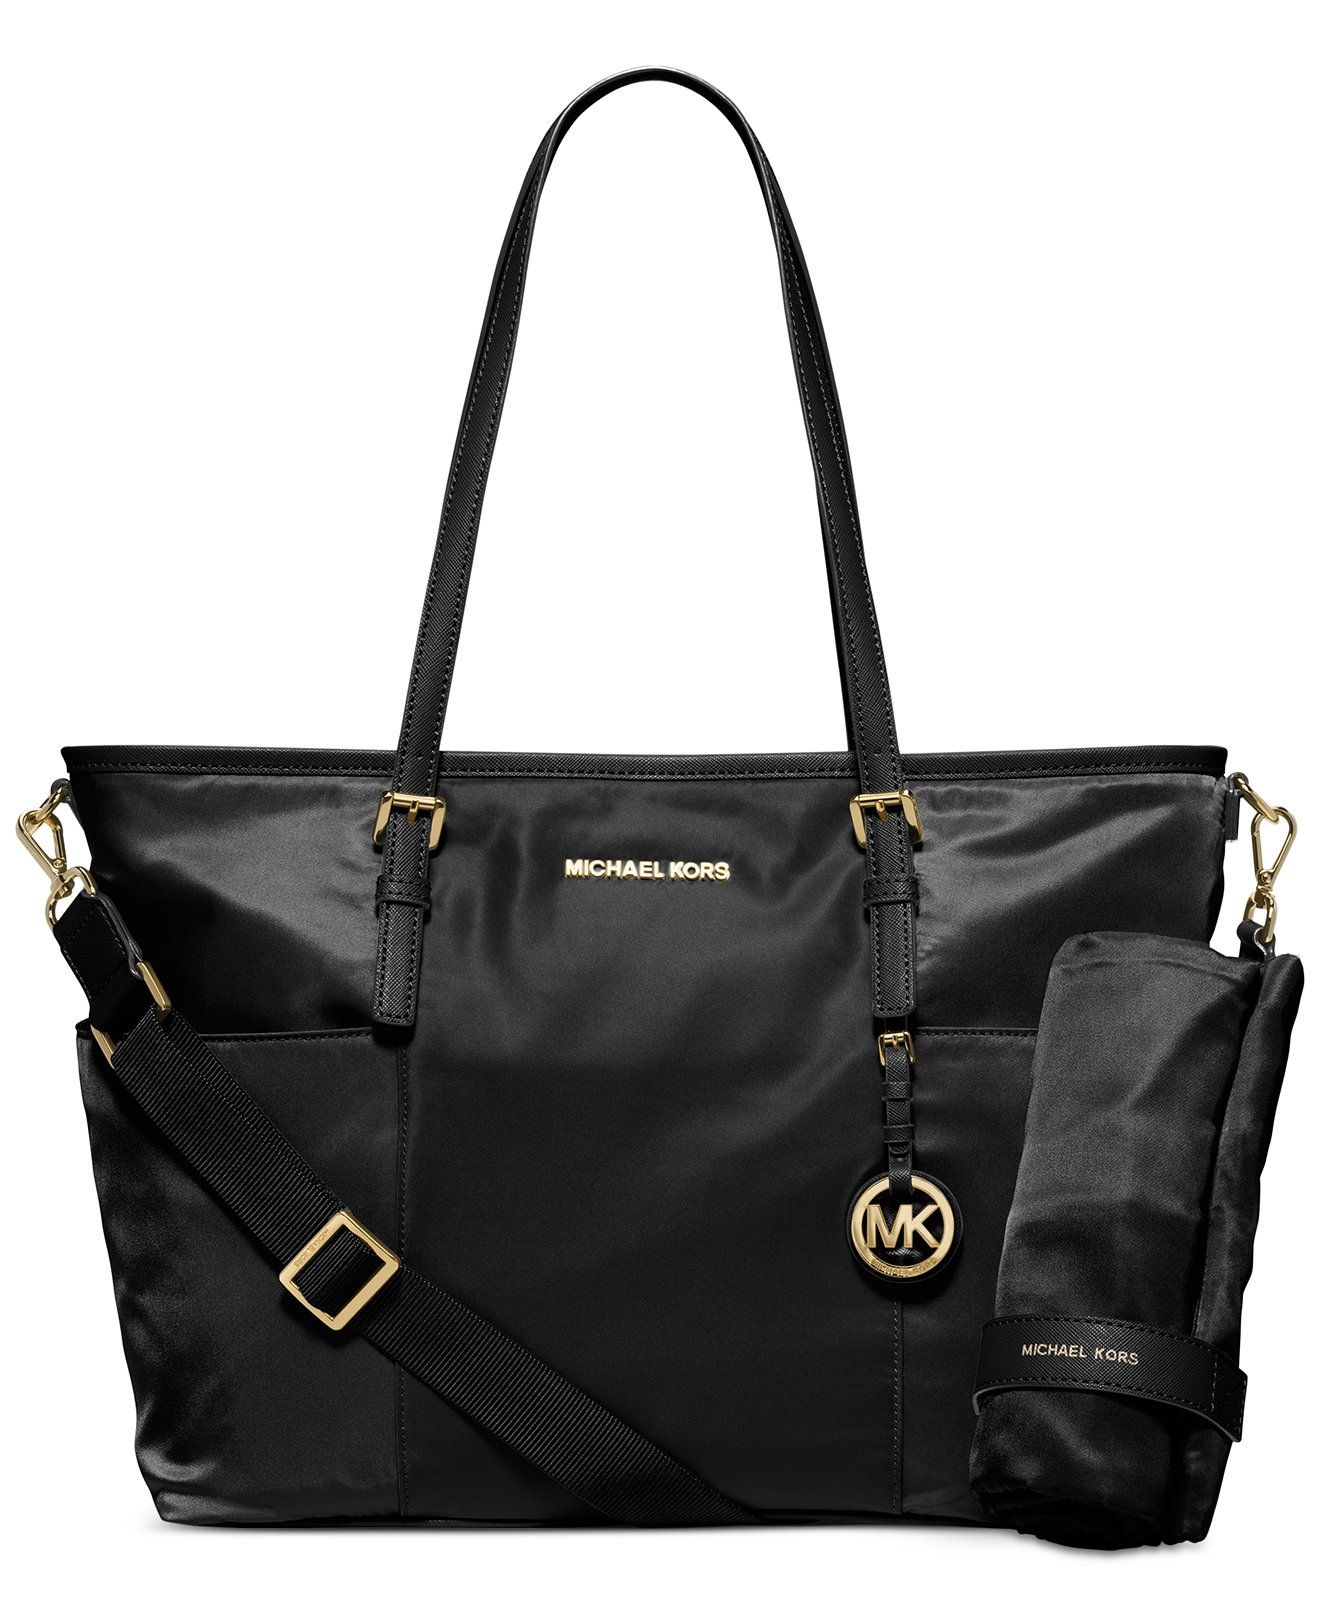 81566be5705a MICHAEL Michael Kors Jet Set Large Pocket Diaper Bag - Michael Kors  Handbags - Handbags & Accessories - Macy's